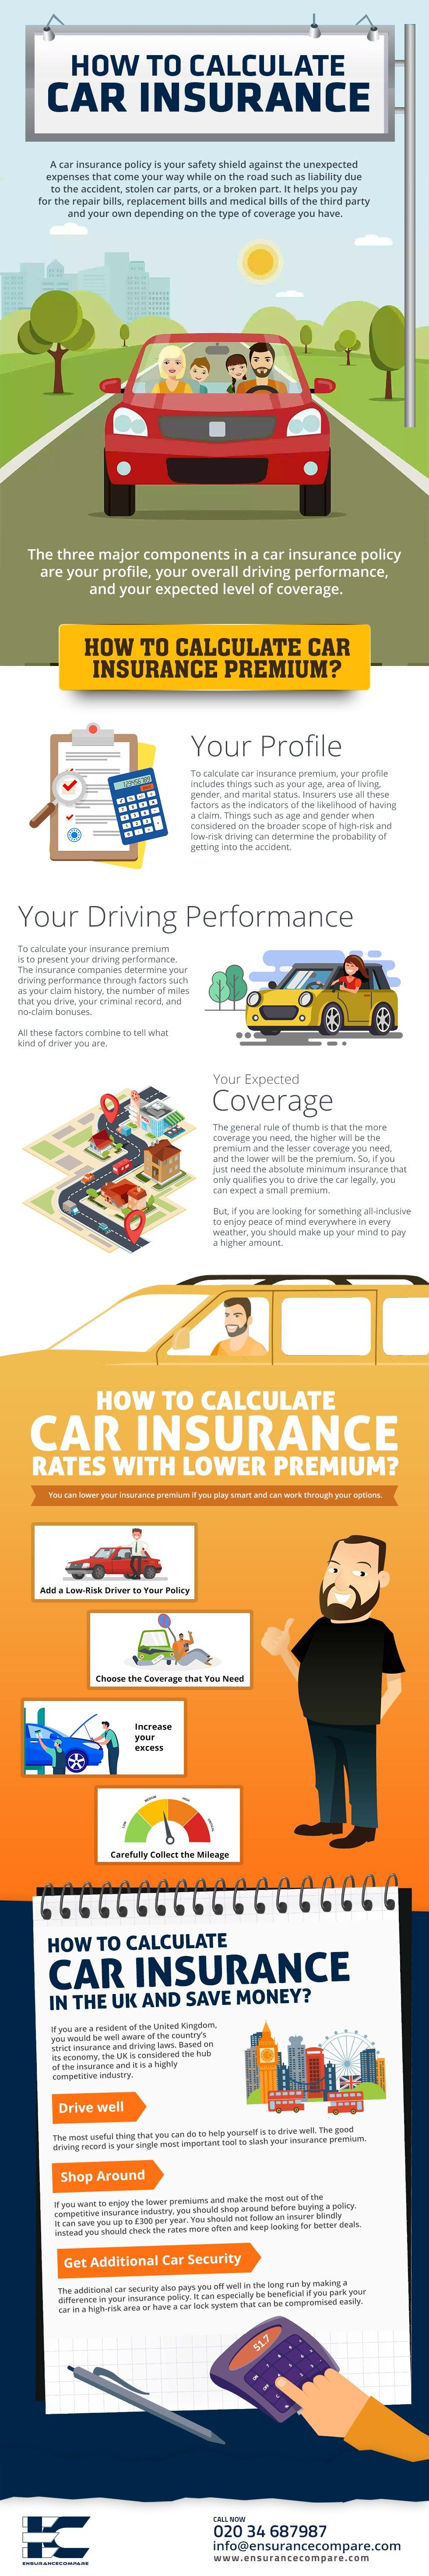 How To Calculate Car Insurance Car Insurance Car Insurance Uk